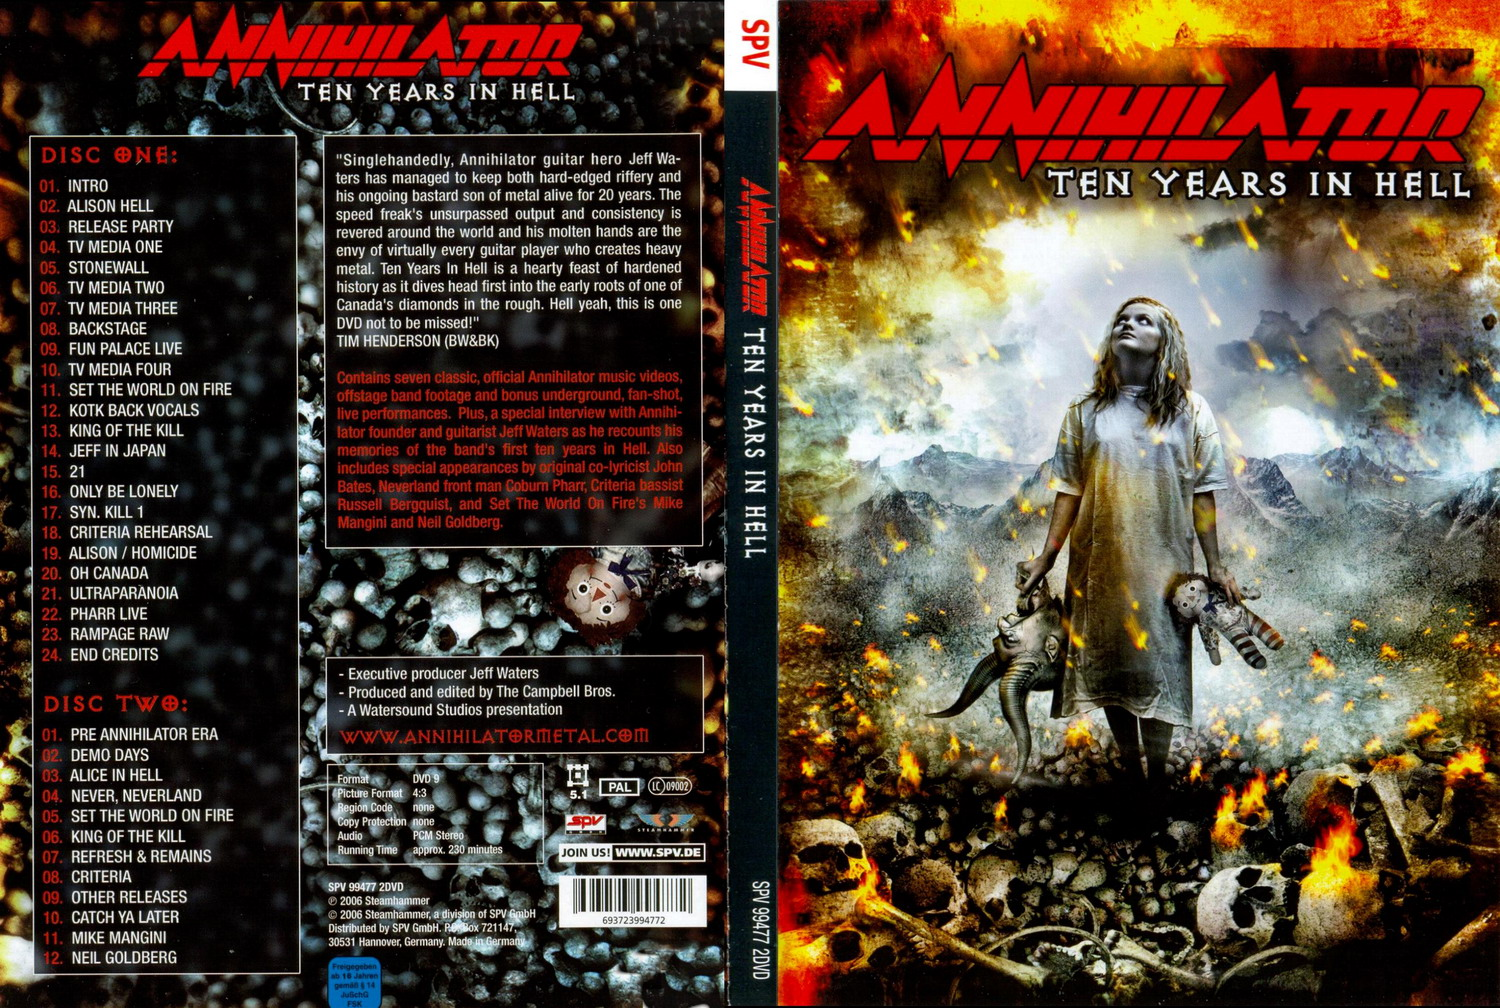 Annihilator - Ten Years in Hell (2 X DVD 9)